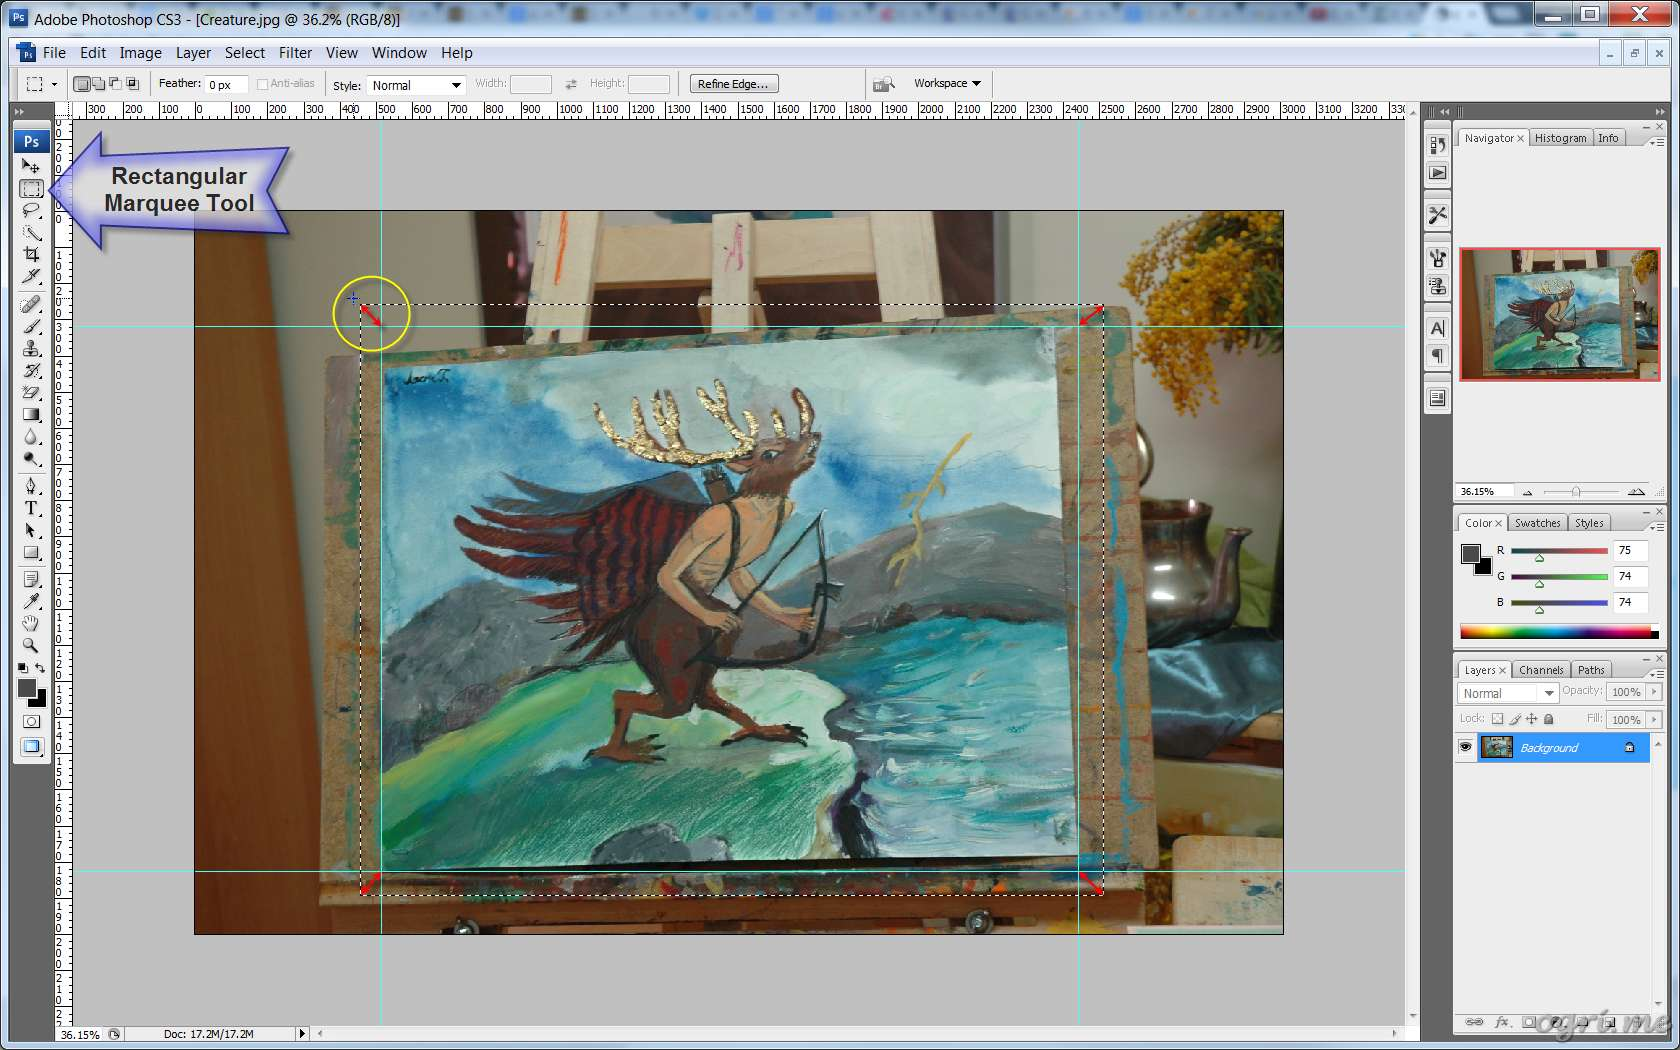 ogri.me | Photoshop: Processing photos of paintings for online gallery #04